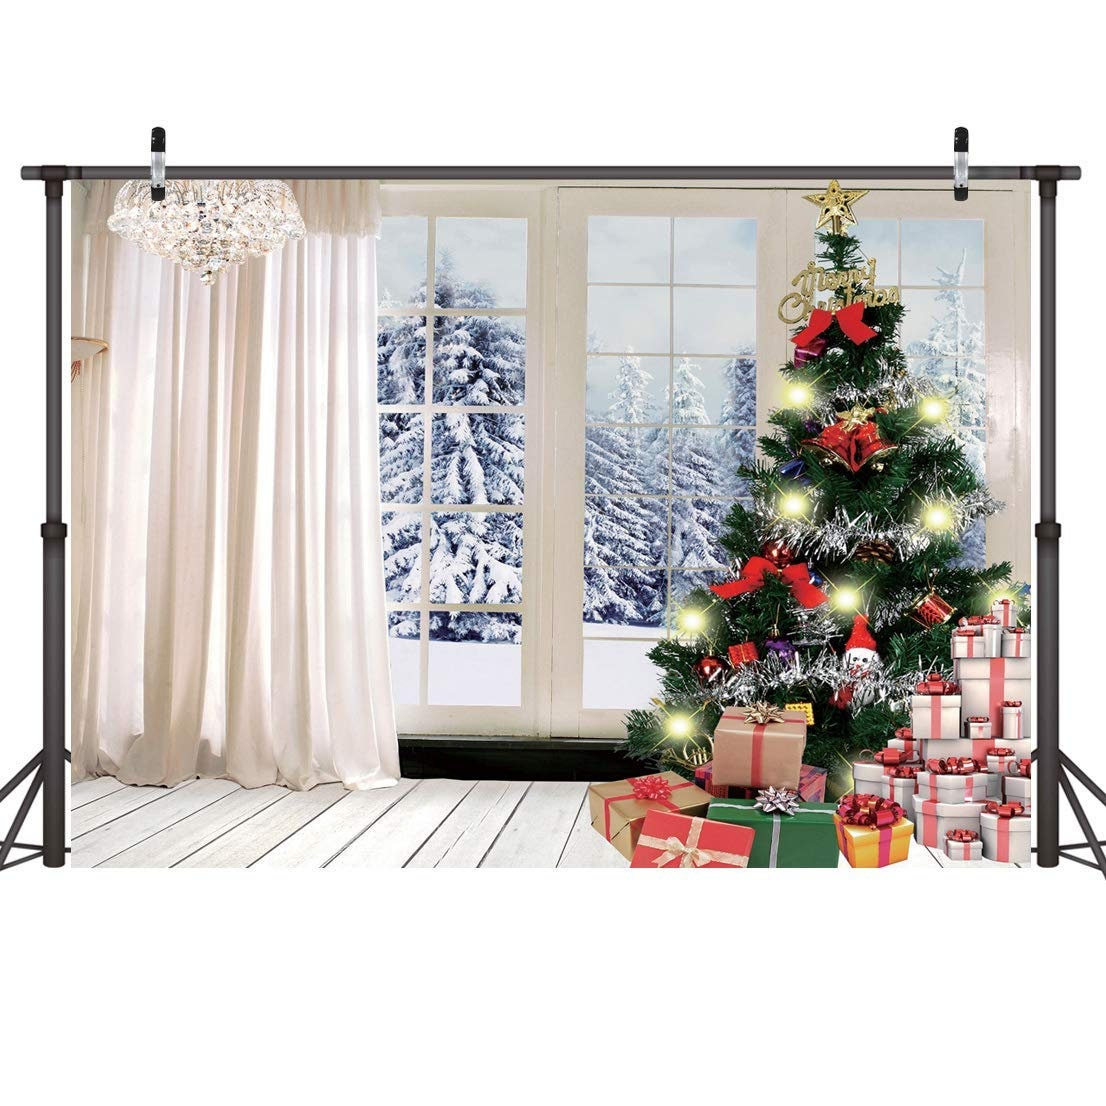 Christmas Tree Gift Backdrop Indoor Wooden Floor Curtains | Etsy